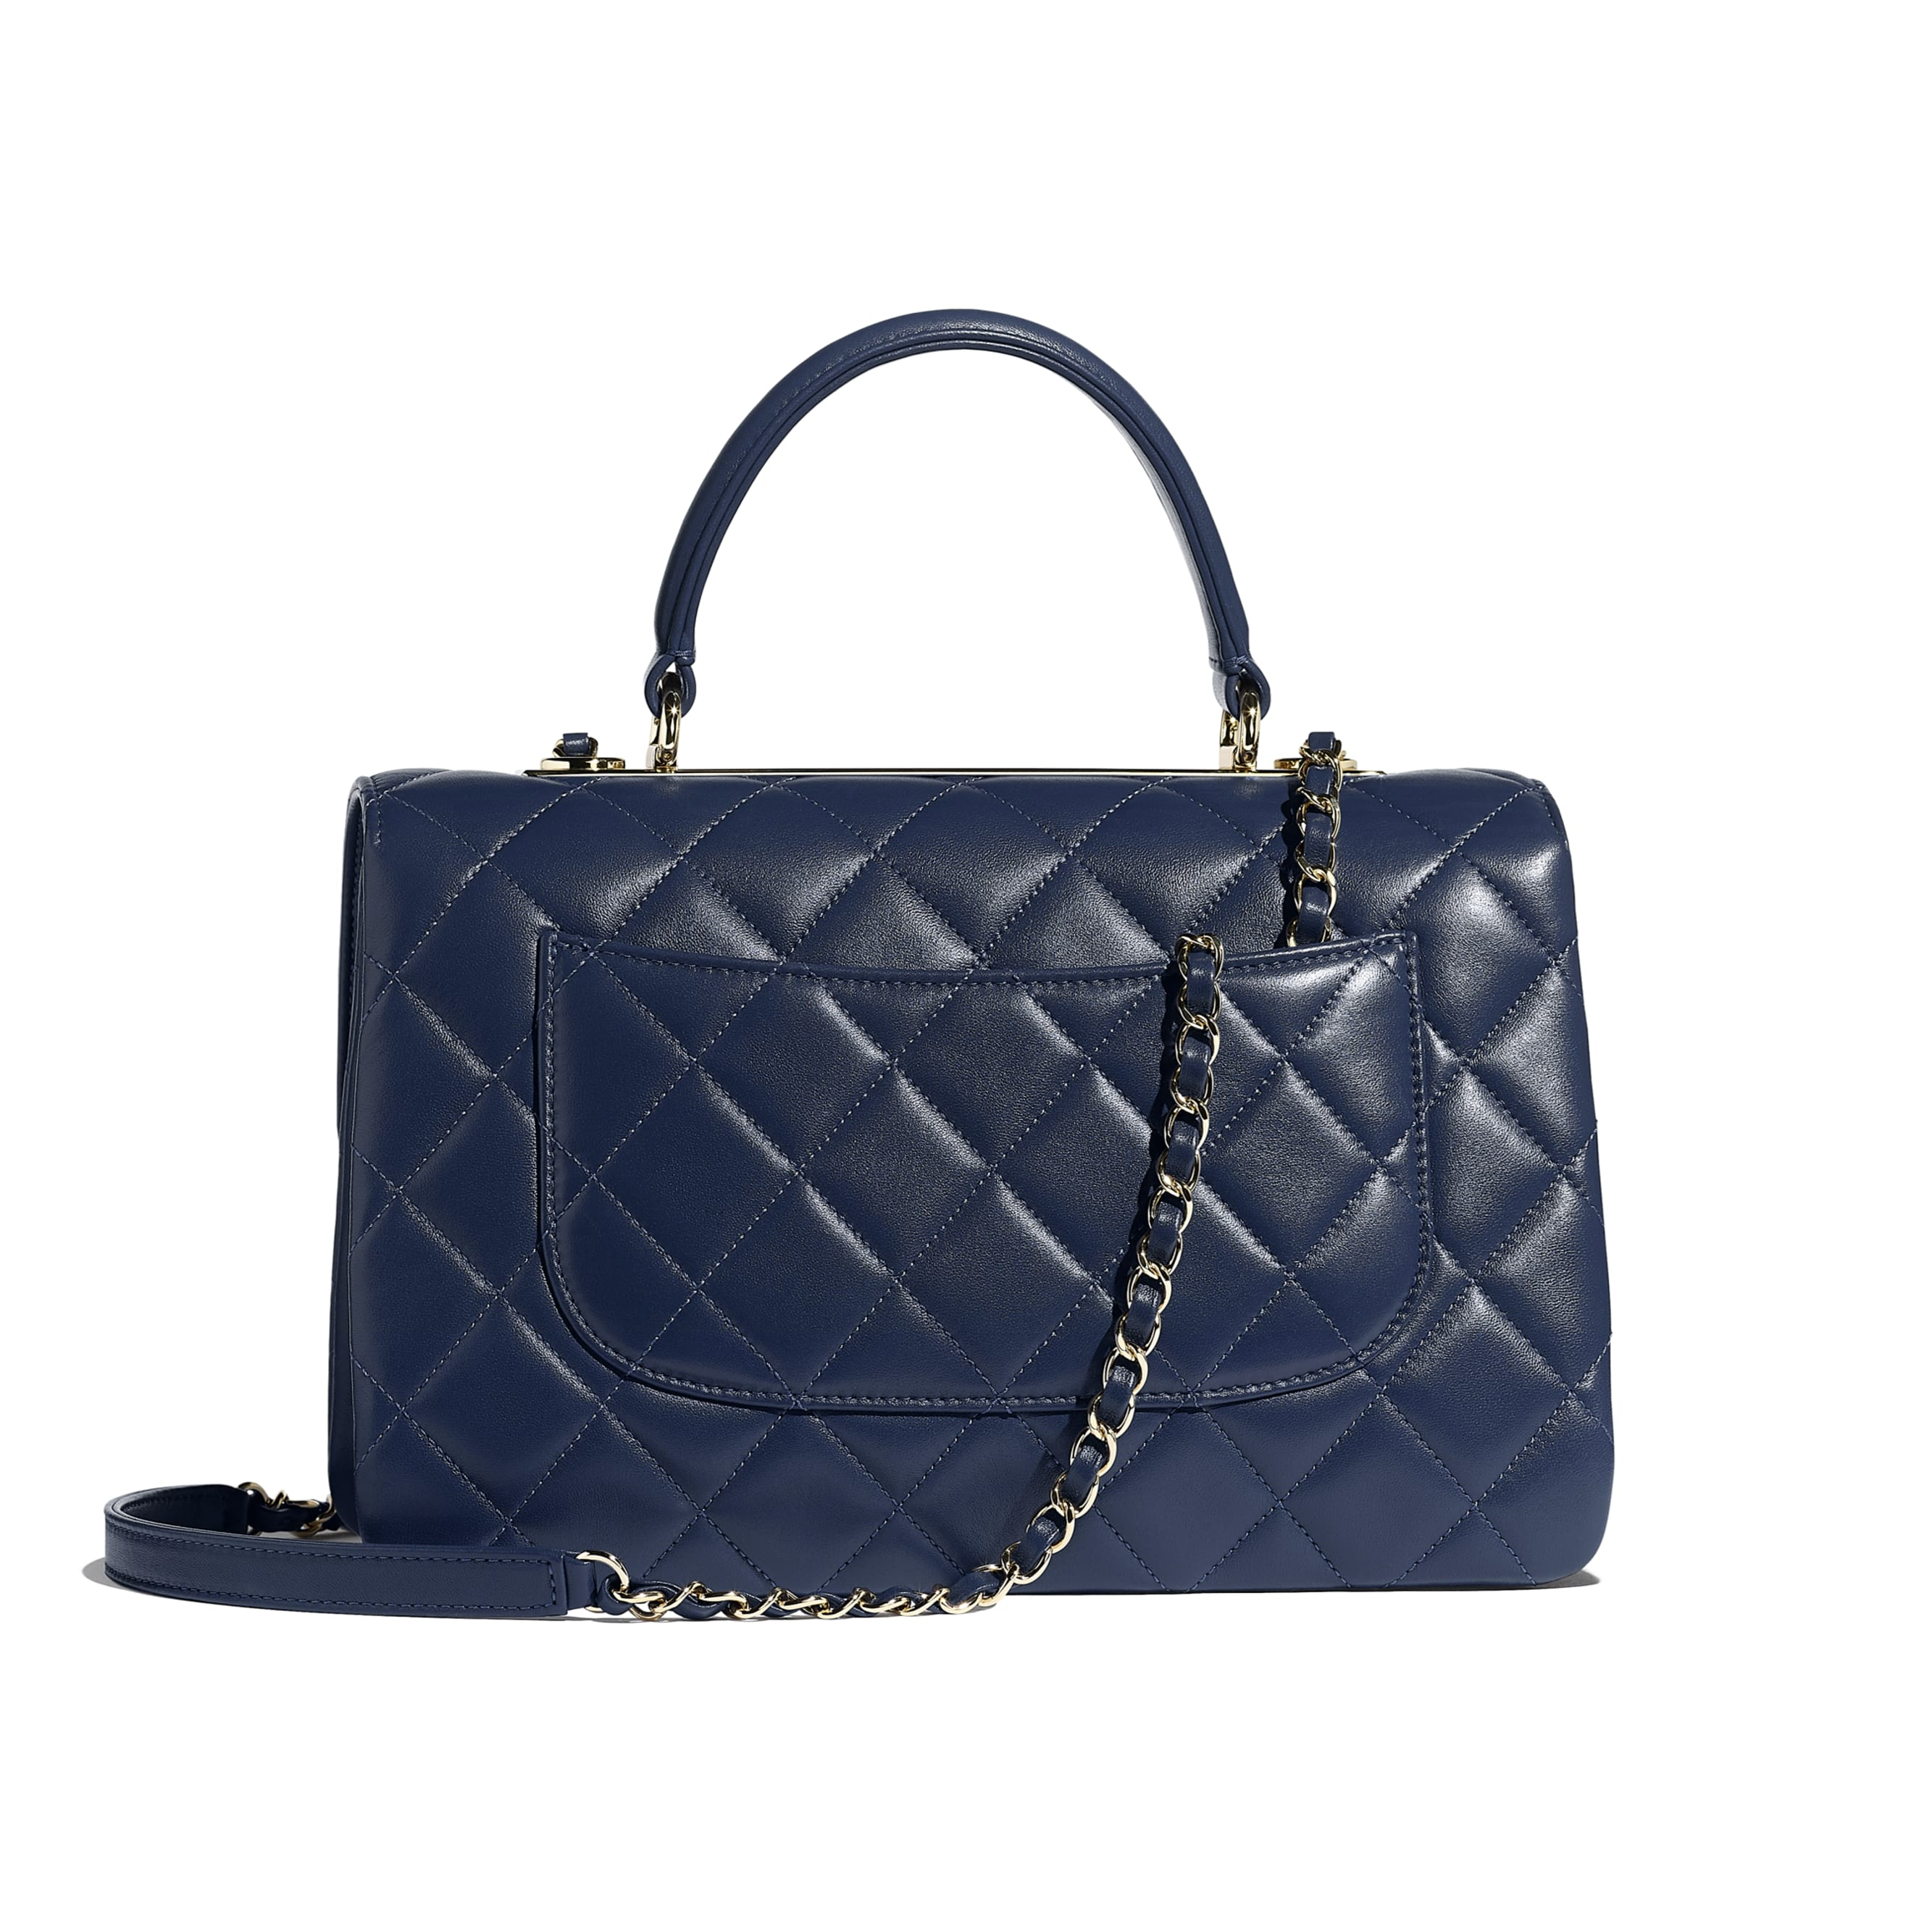 Flap Bag with Top Handle - Navy Blue - Lambskin & Gold-Tone Metal - CHANEL - Alternative view - see standard sized version